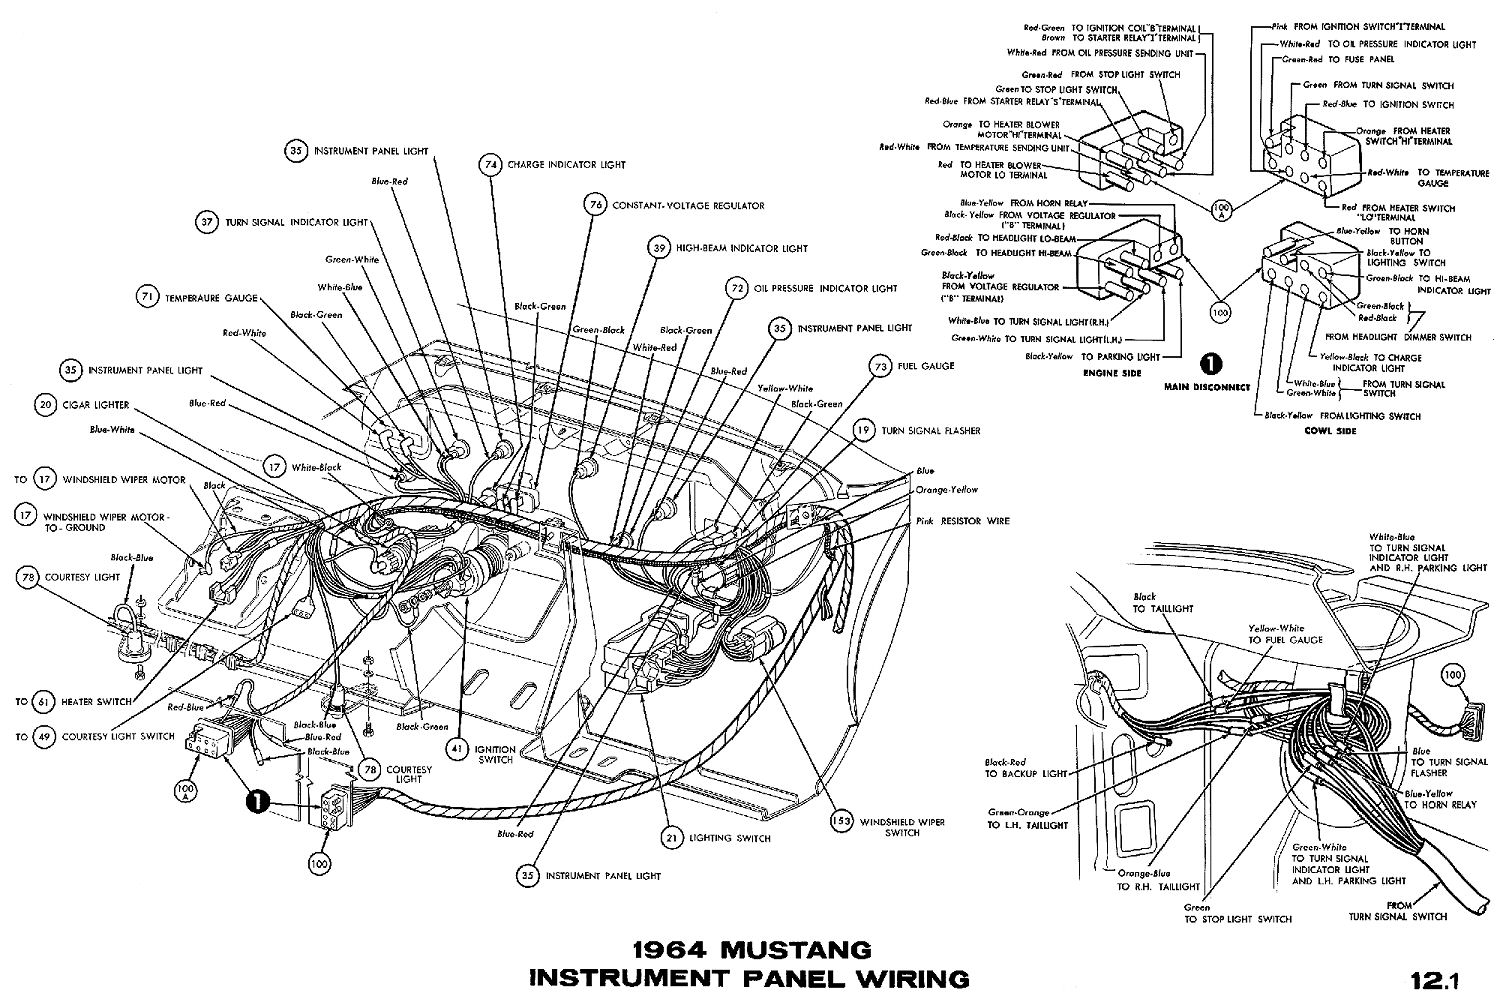 1966 mustang dash panel wiring diagram trusted wiring diagram u2022 rh soulmatestyle co